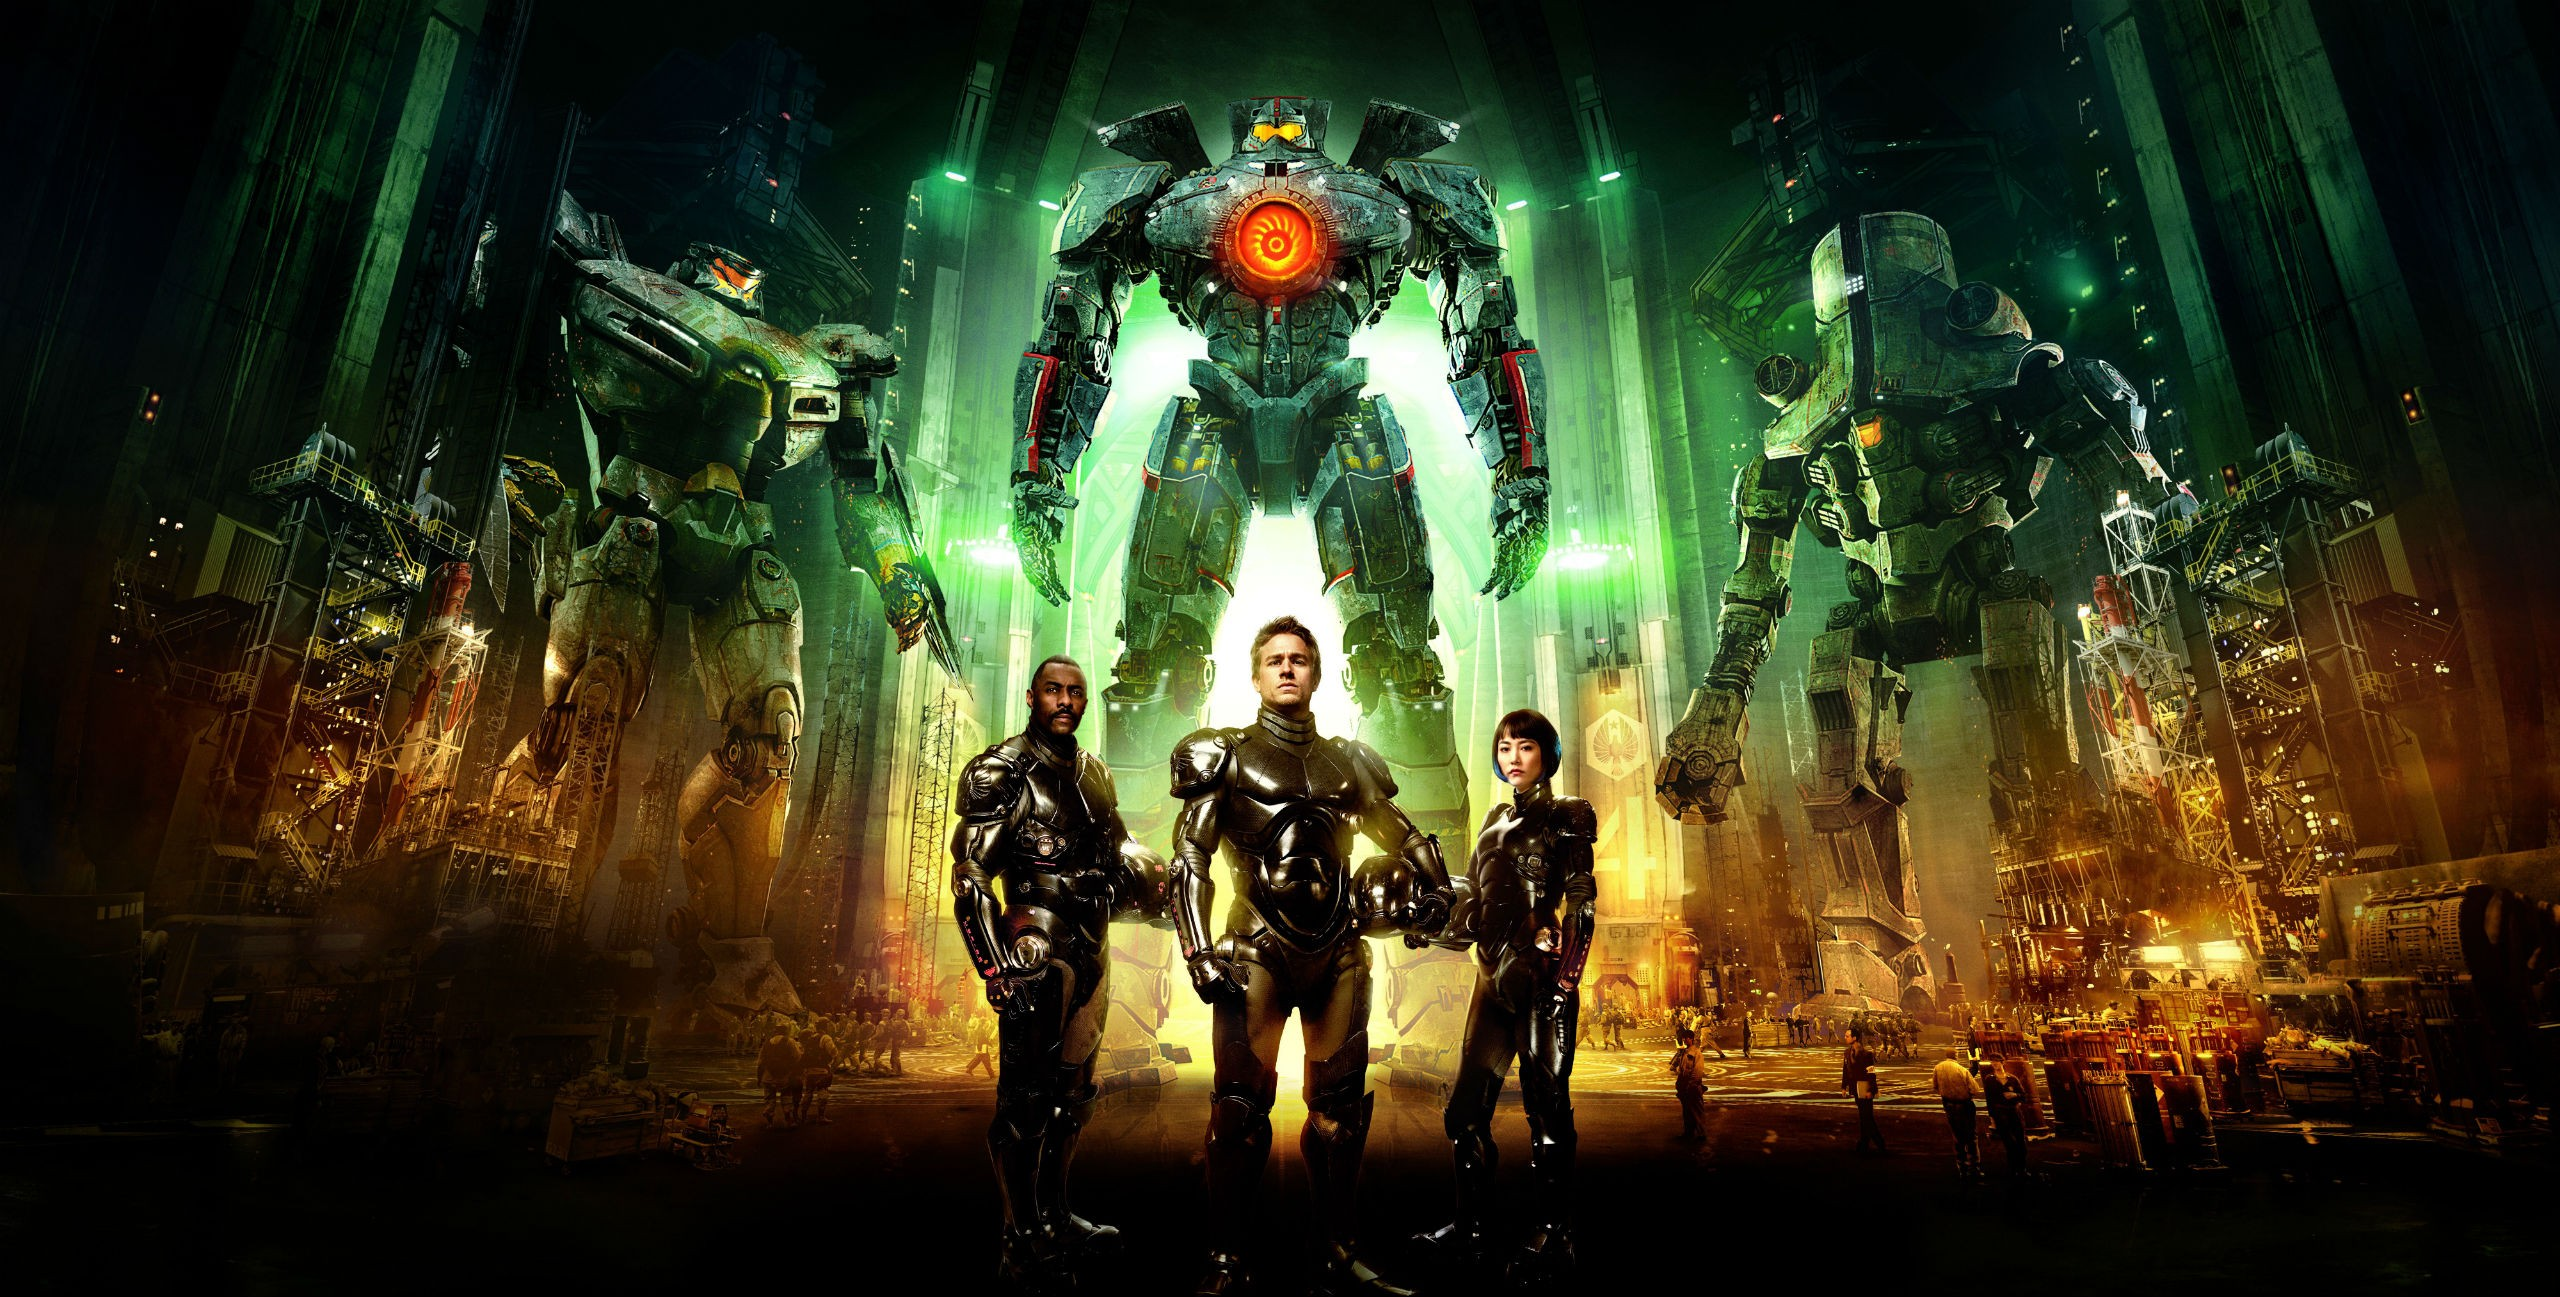 Pacific Rim Wallpaper 1 Download Free Cool Full HD Wallpapers For